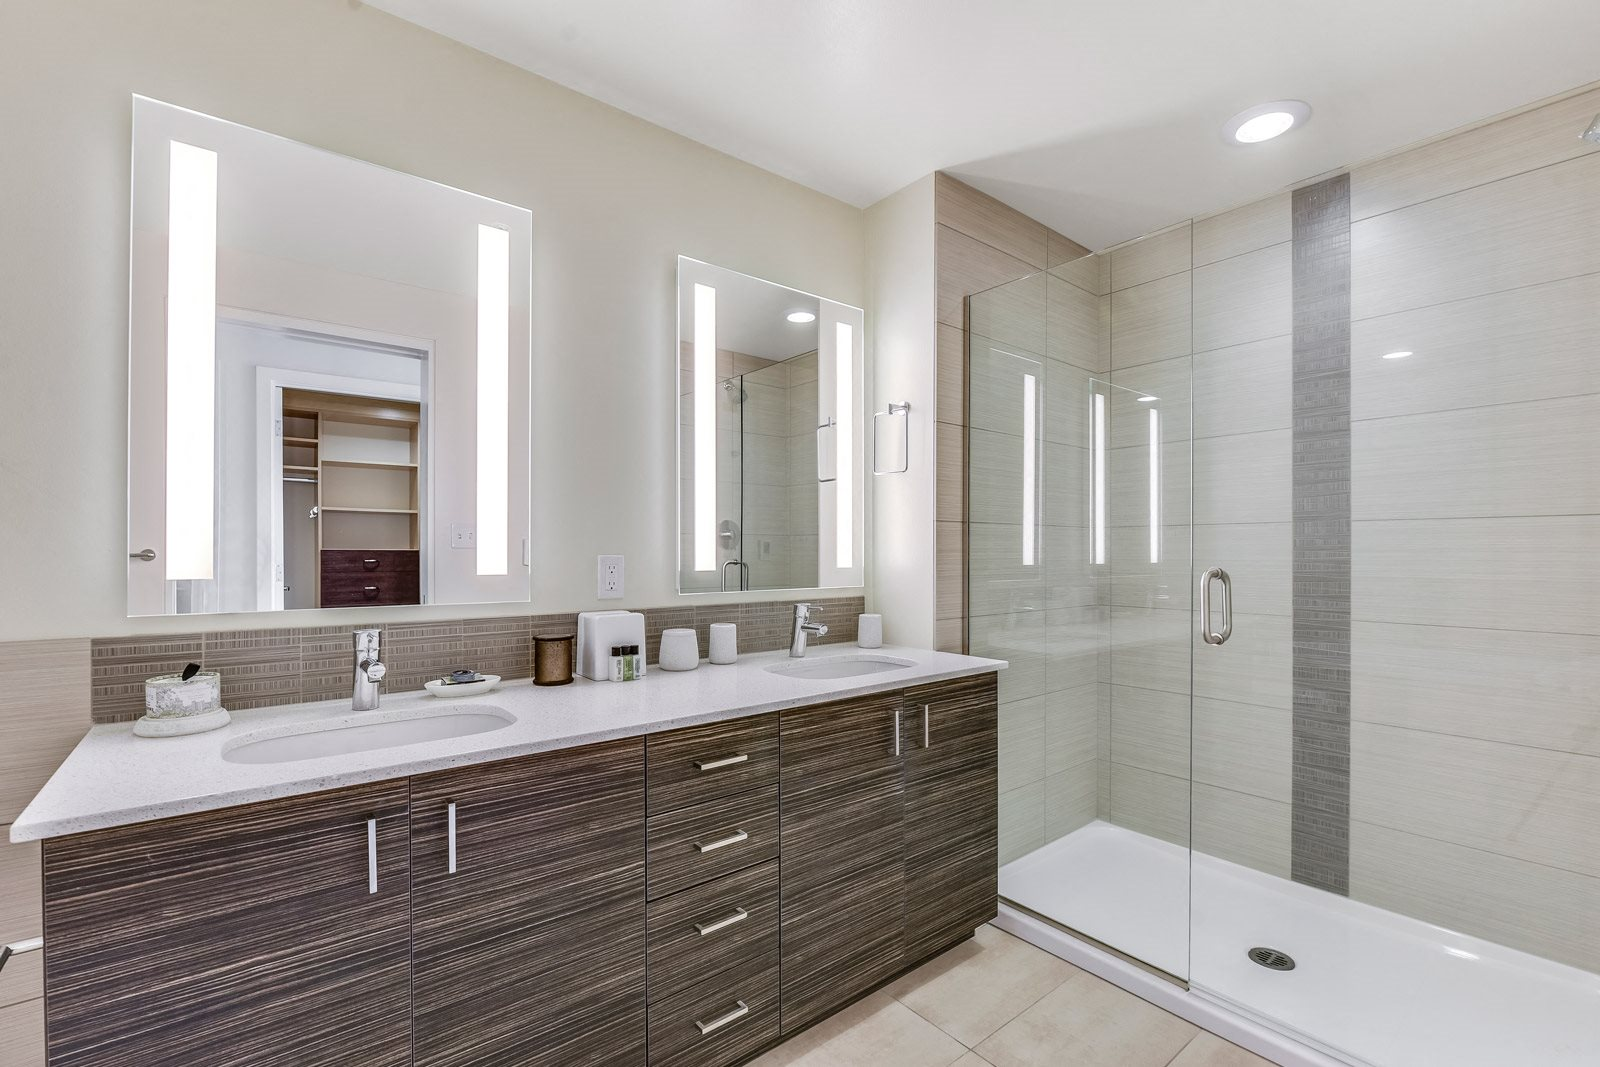 Luxury Bathroom with Quartz Countertops at The Martin, 2105 5th Ave, Seattle